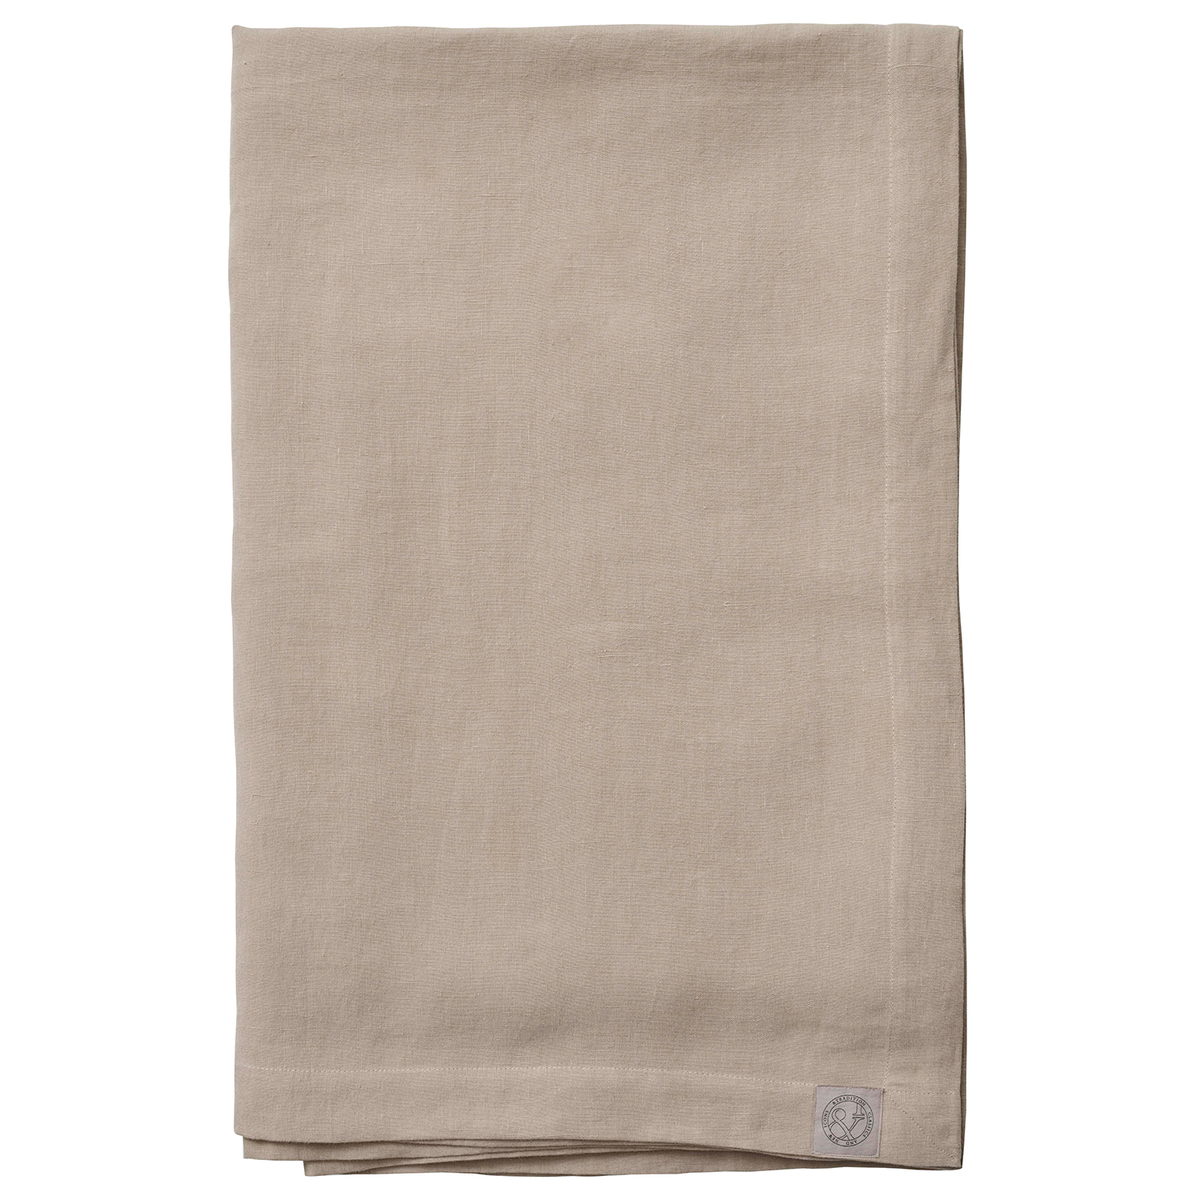 &Tradition Collect Linen SC31 bedspread, 240 x 260 cm, sand from &Tradition